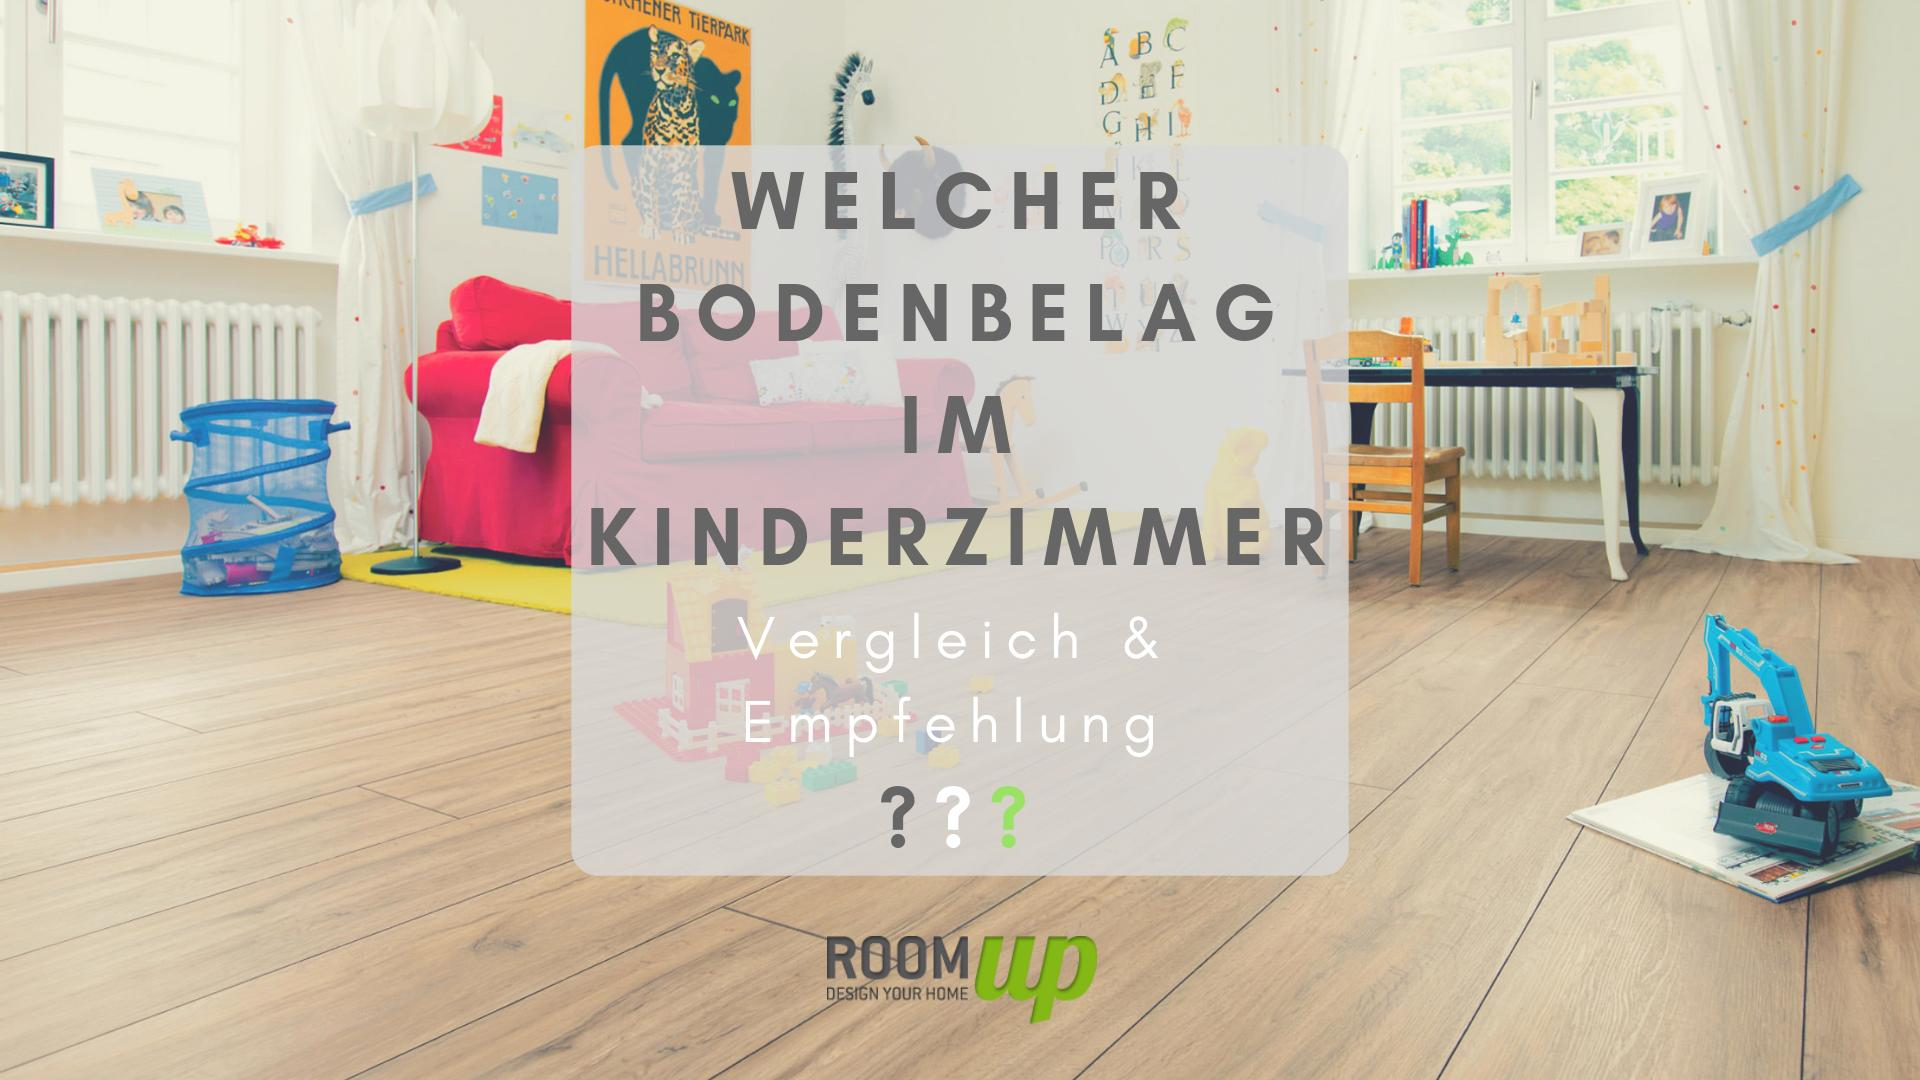 Welcher Bodenbelag im Kinderzimmer? - Room Up Magazin